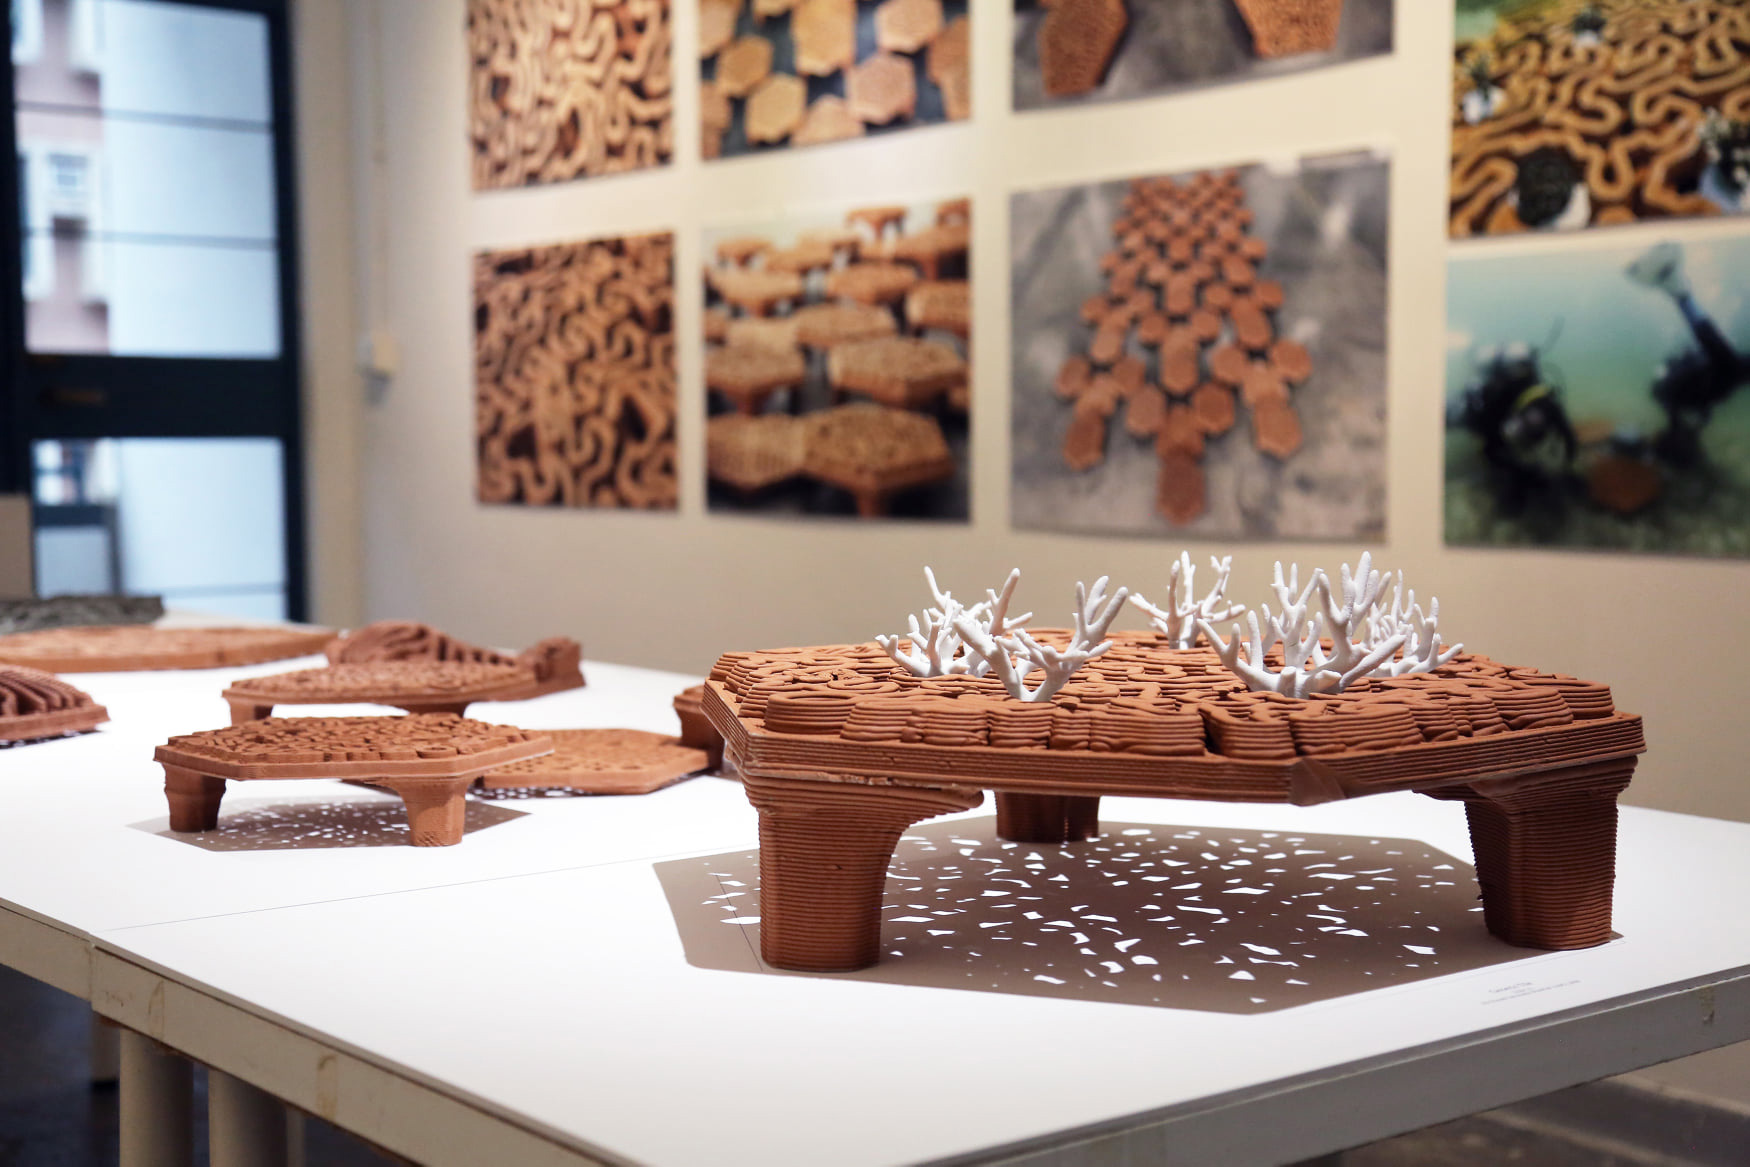 Christian J. Lange, autobryks3D, 3d printing, robotic fabrication, coral reef, artificial coral reef, coral restoration, terracotta architecture, 3D printed coral